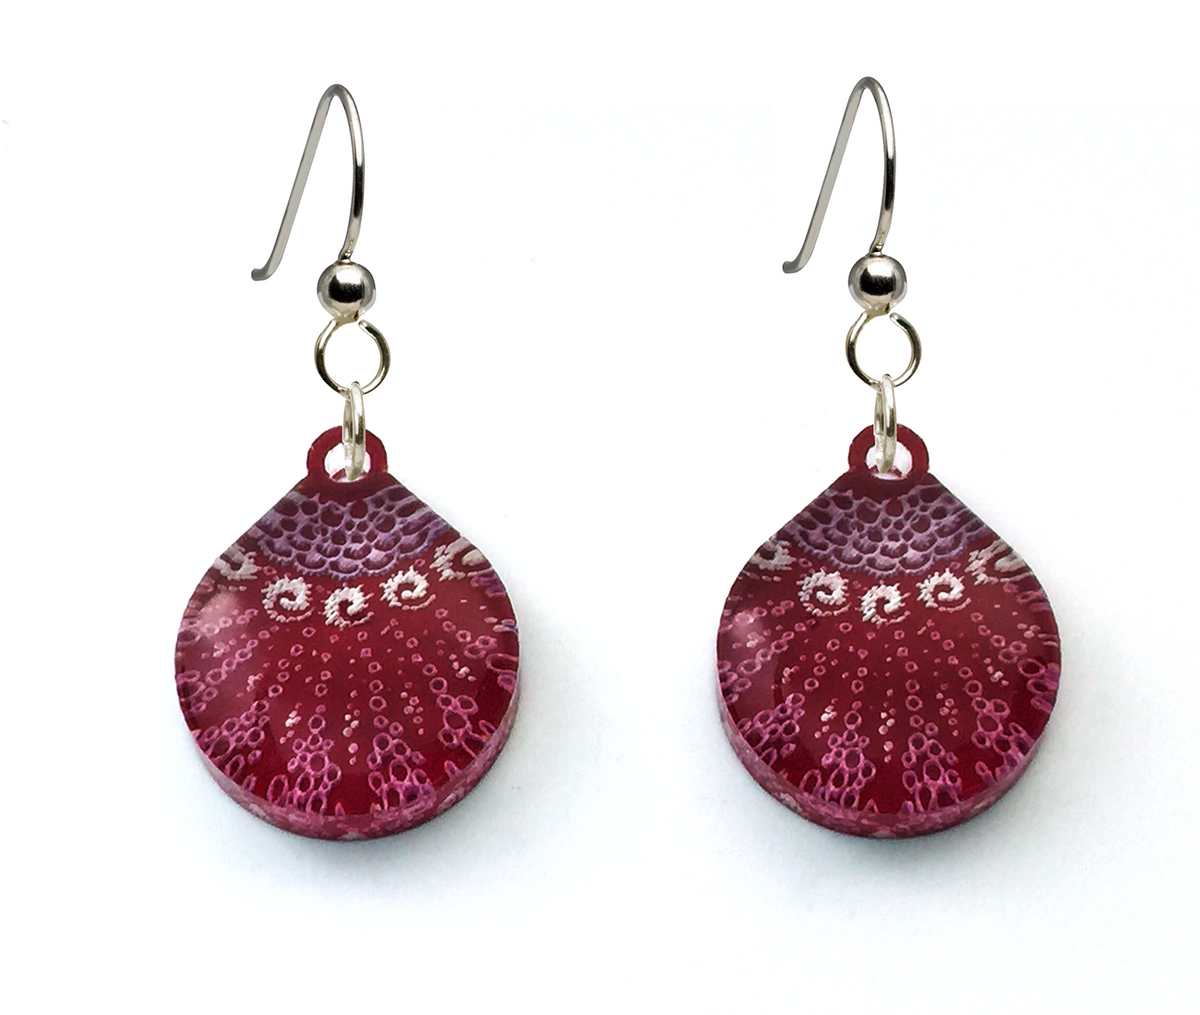 Starfish Earrings, Small Teardrop shape, Magenta, From Lab Partners Jewelry